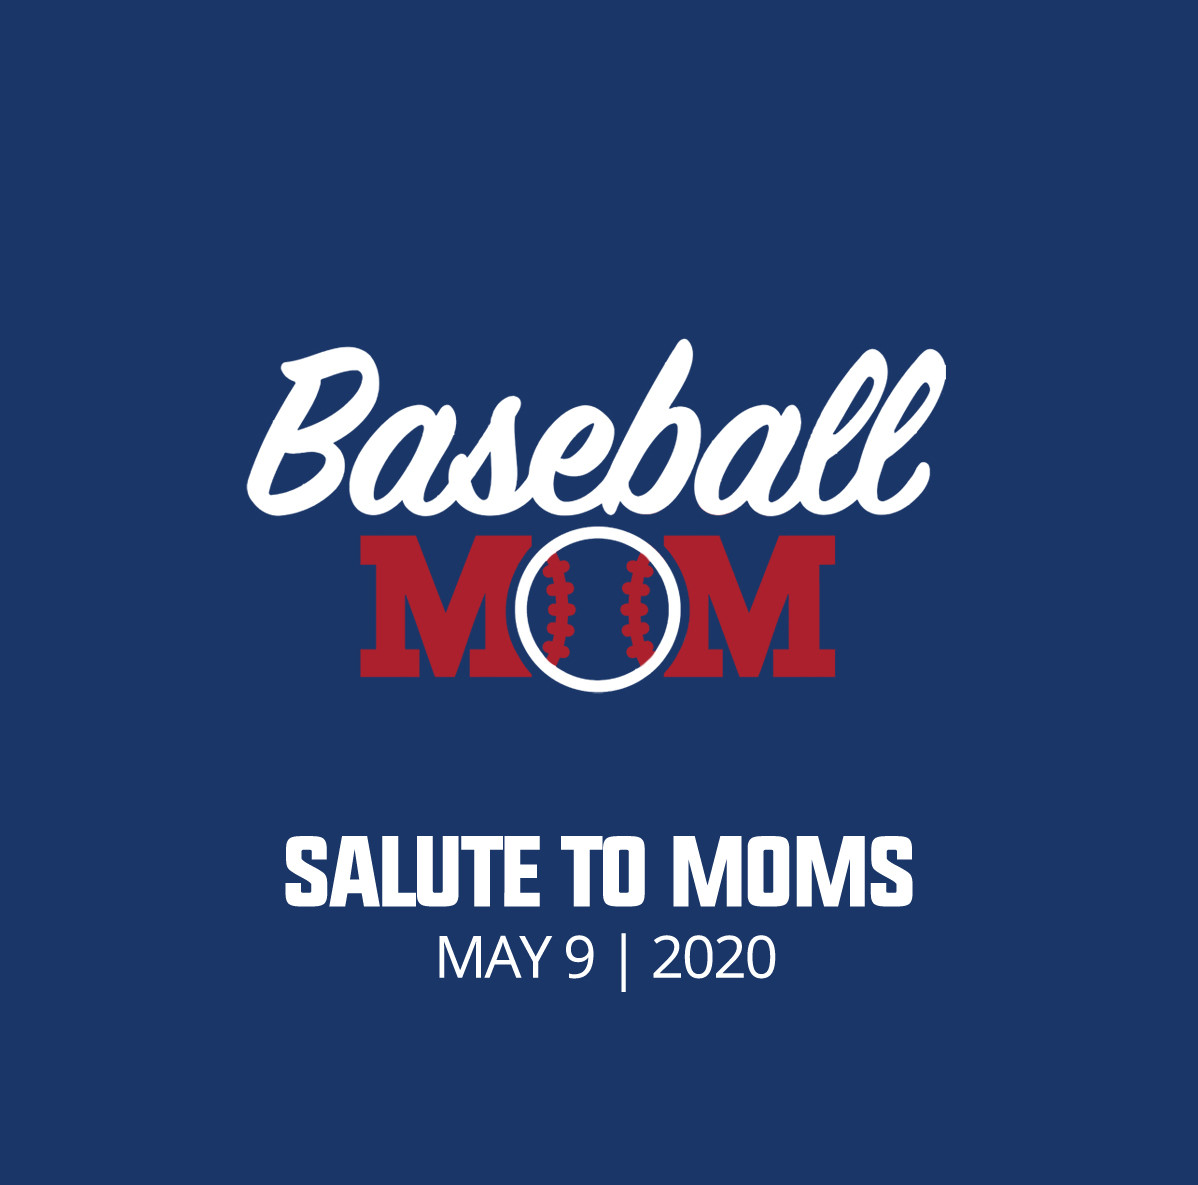 Upstate - Salute to Moms